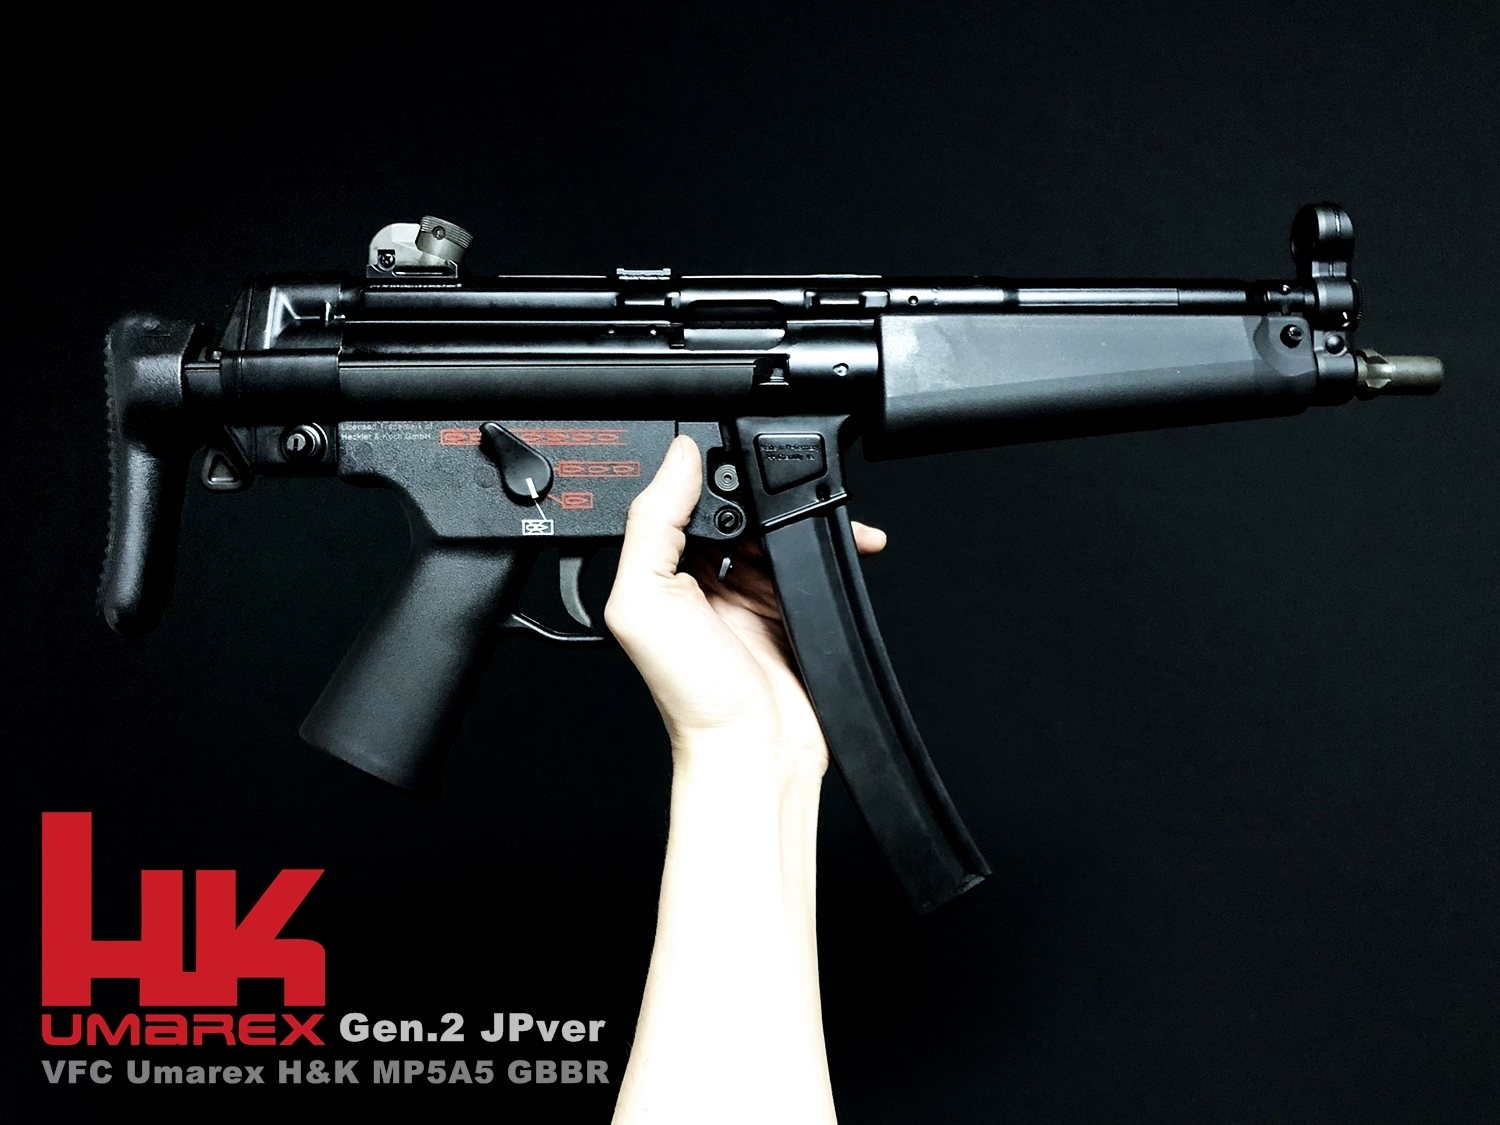 0 Umarex H&K VFC MP5A5 Gen2 GBBR JPver HK Licensed!! VFC GBB MP5 ガスブロ GET ~ 新品箱出し編!! 購入 箱出 初速 検証 通常分解 組立 レビュー!!